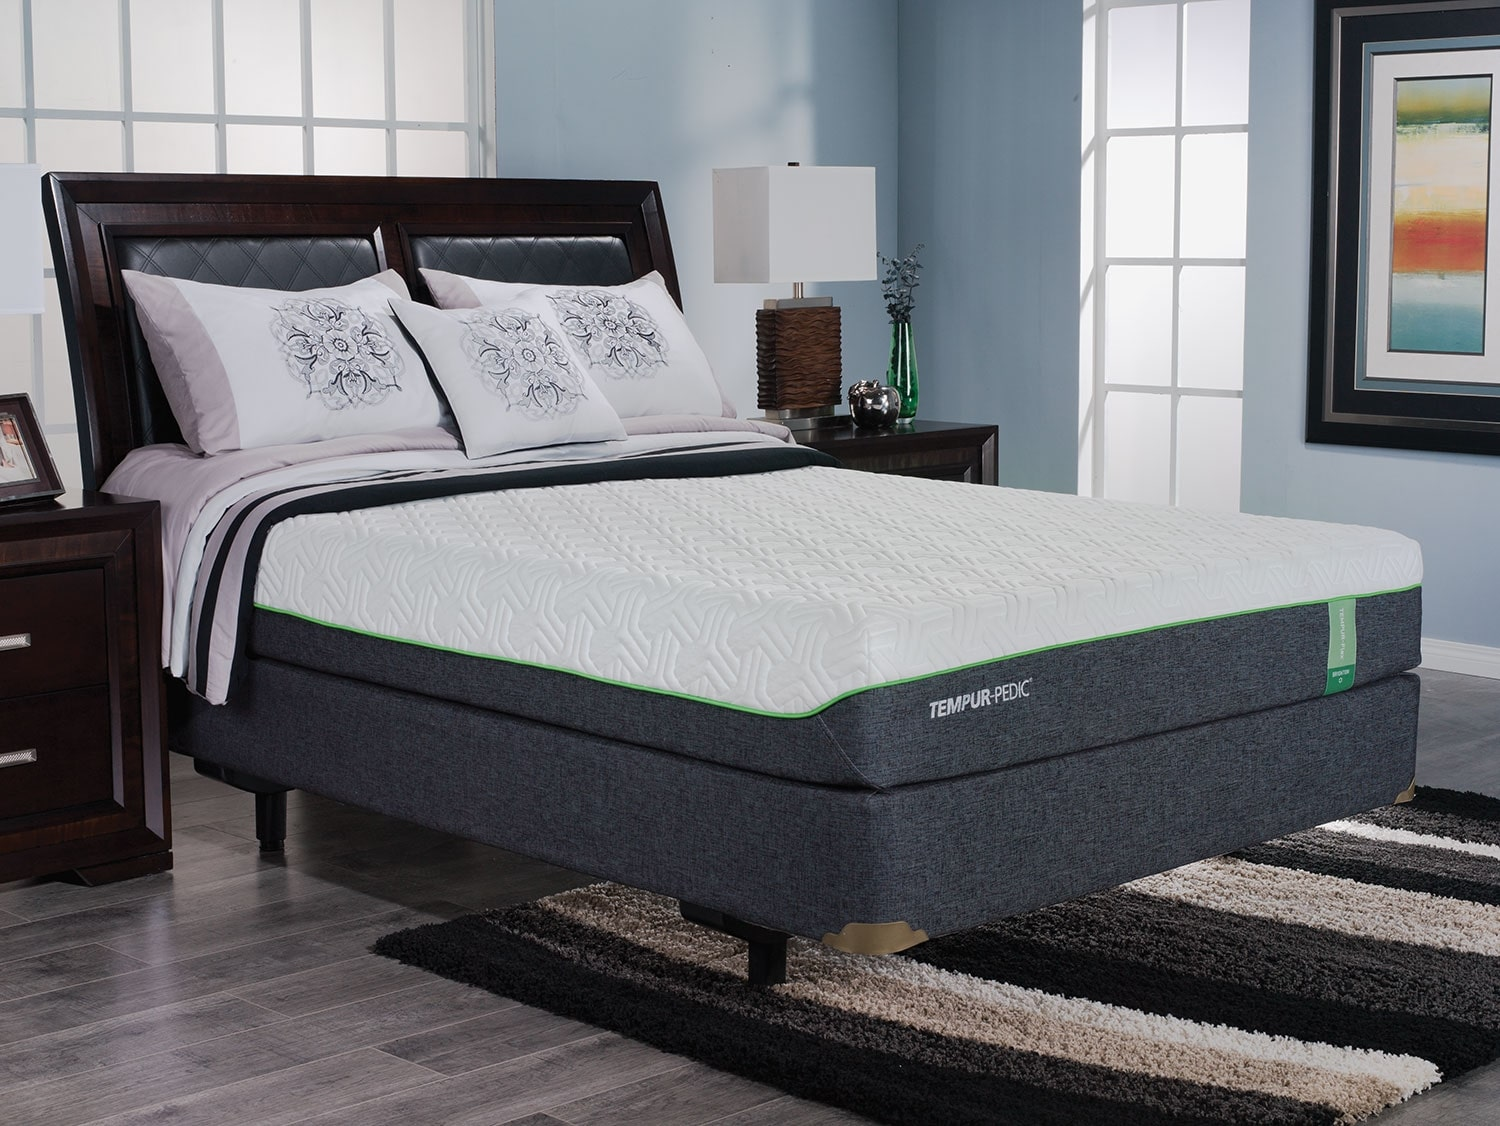 Mattresses and Bedding - TEMPUR-Flex™ Brighton Queen Mattress and Reflexion™ Tuxedo Adjustable Base Set